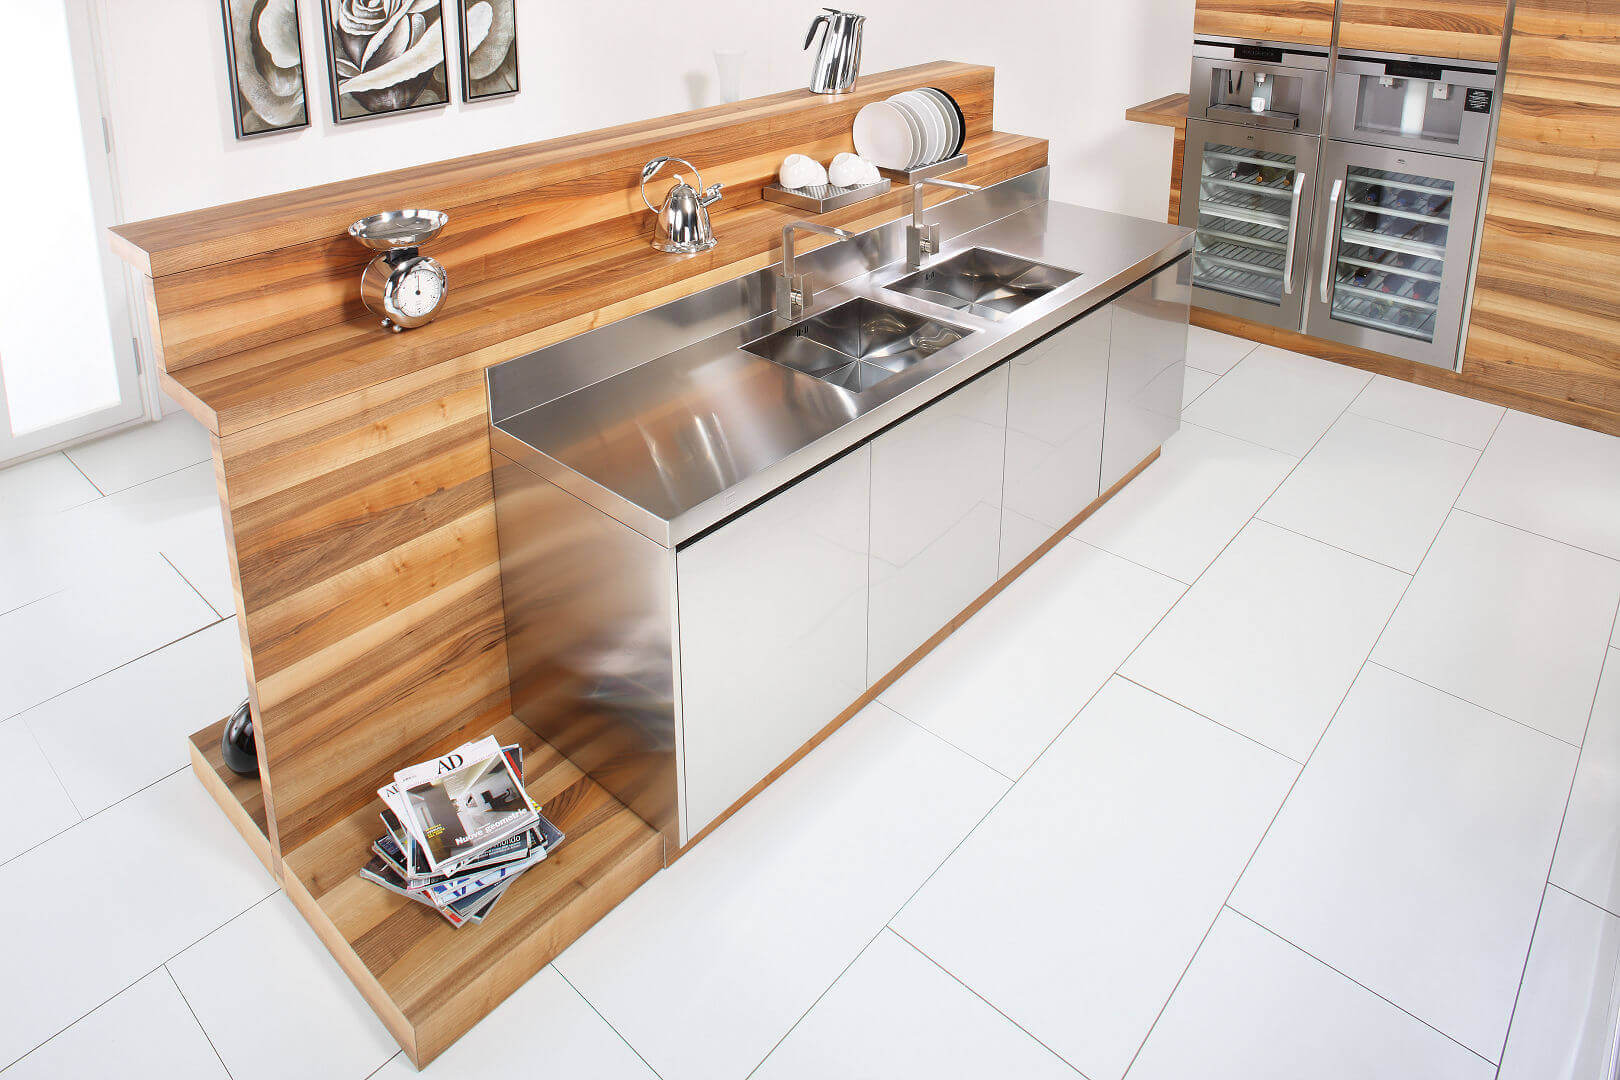 Arca Cucine Italy - Domestic stainless steel kitchens - Hd - Arca_420 472